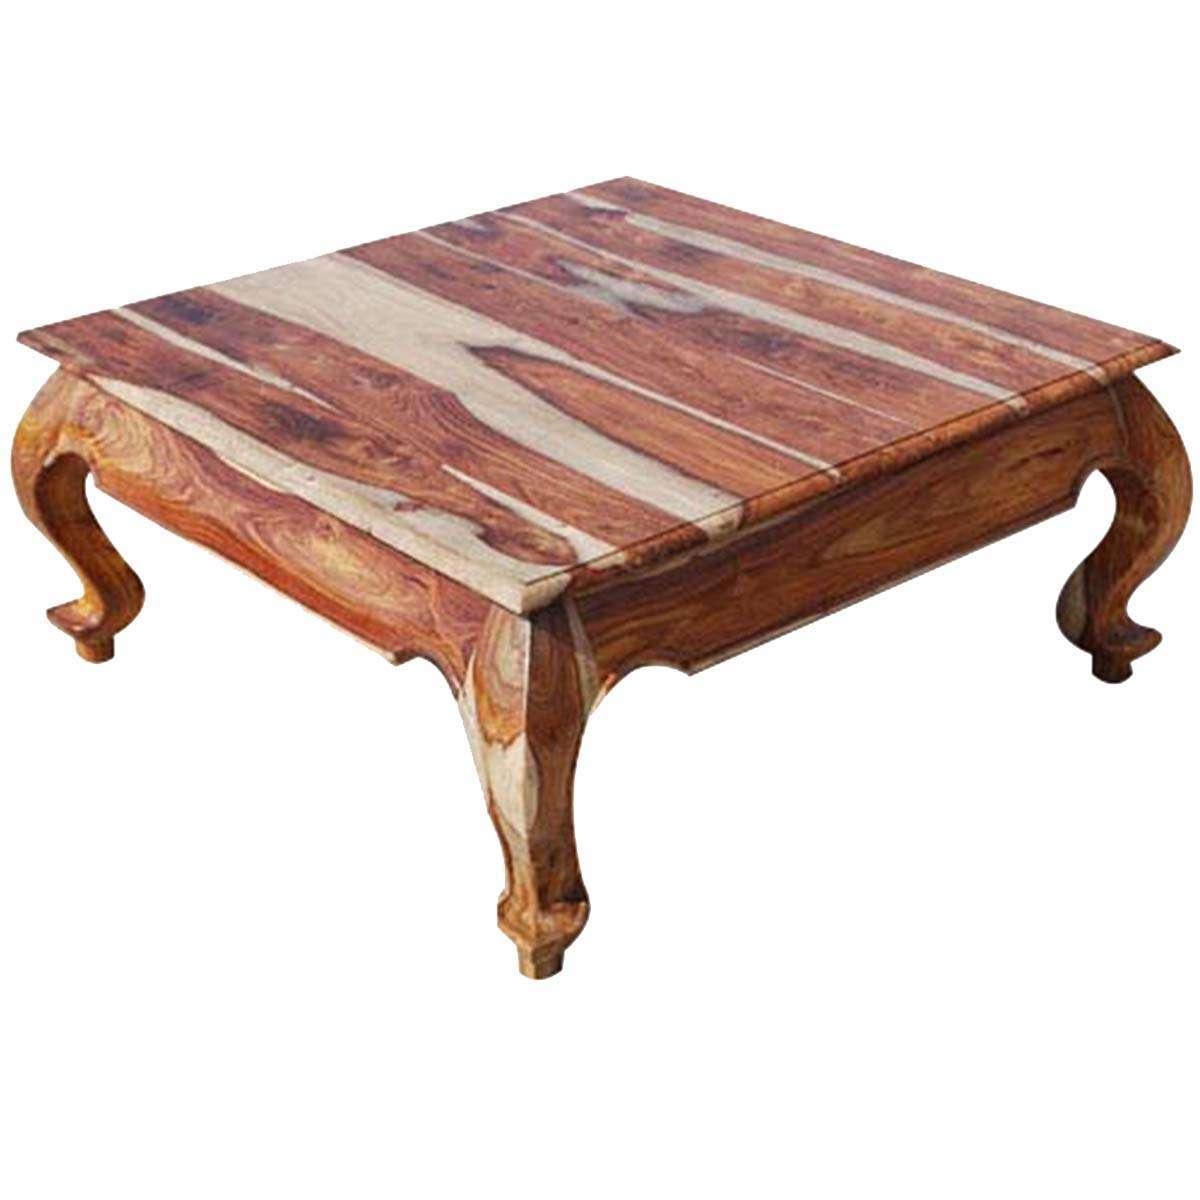 Custom Made Rustic Wood Coffee Tables With Most Current Solid Wood Coffee Tables (View 5 of 20)